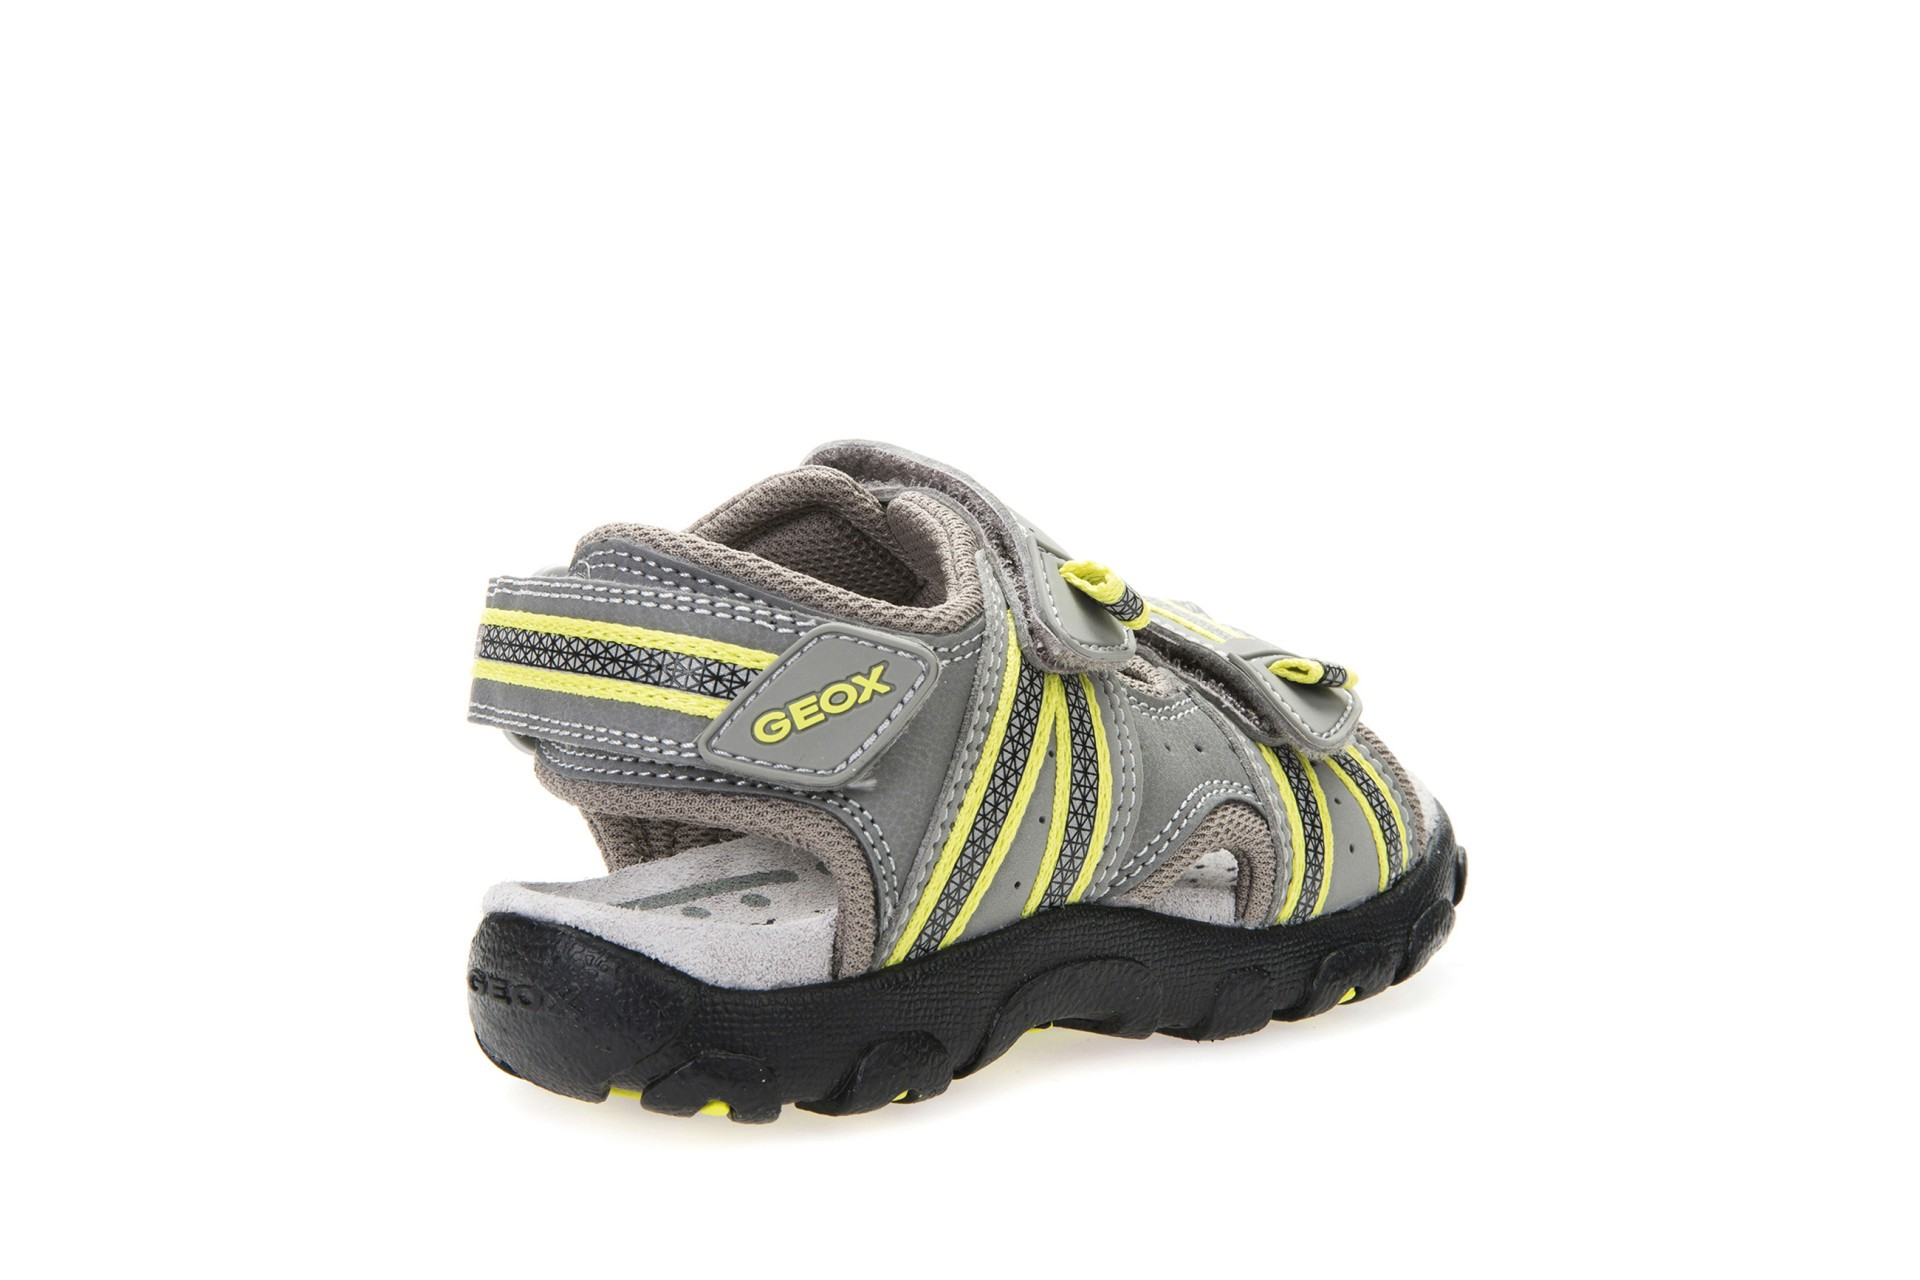 Geox Strada Grey Lime Sandals Geox Kids Shoes Little